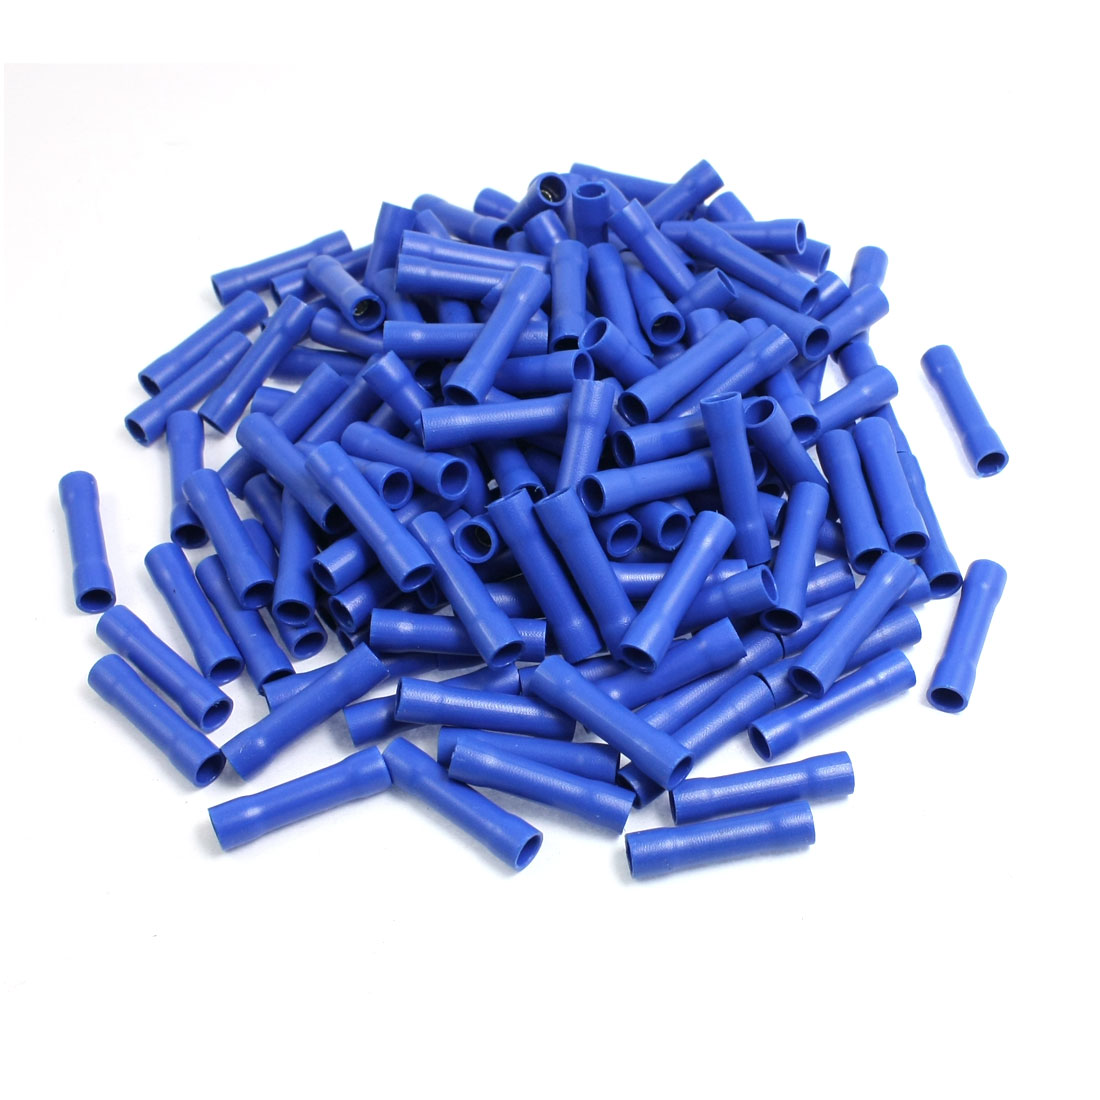 200-Pcs-Blue-Insulated-Crimp-Receptacle-Terminals-Cable-Lug-FRD2-195-AWG-16-14